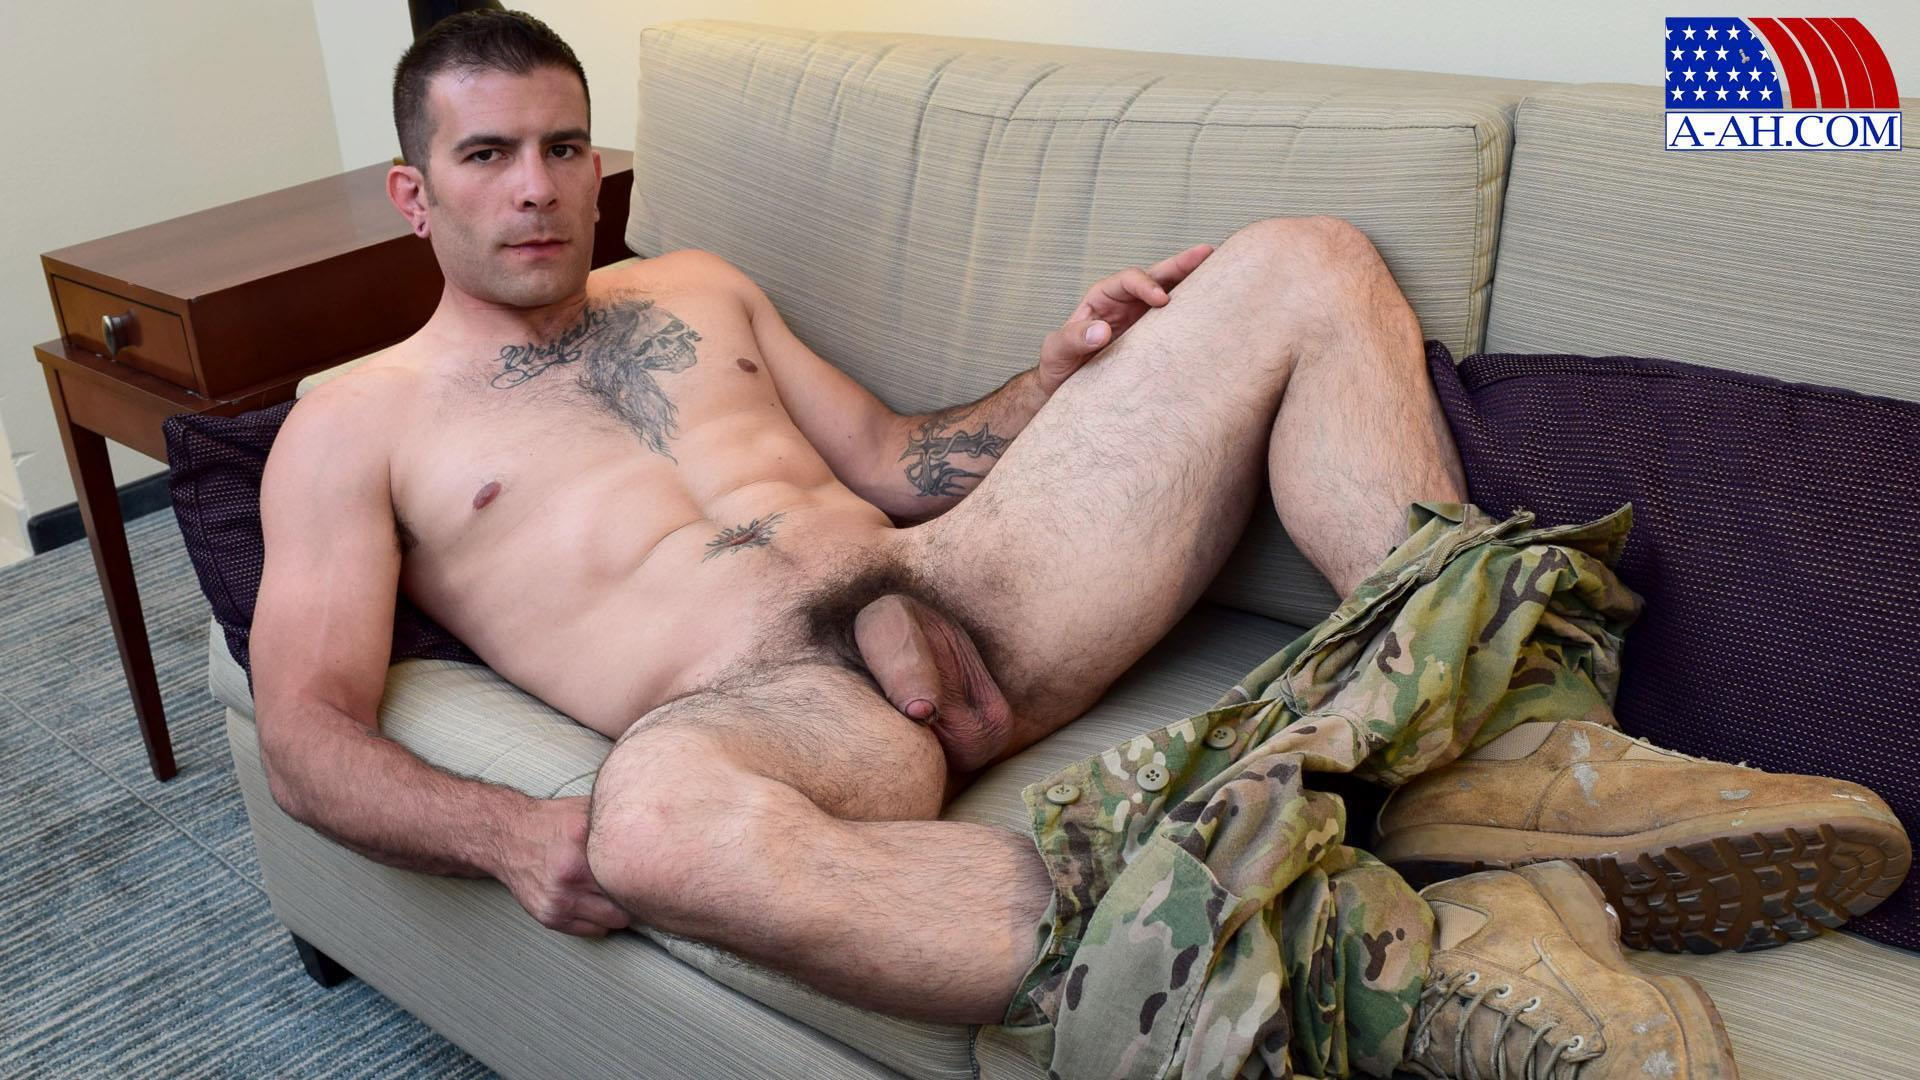 All-American-Heroes-JB-US-Amry-Soldier-Jerking-His-Big-Uncut-Cock-Amateur-Gay-Porn-09 Amateur Straight US Army Specialist Stroking His Big Uncut Cock